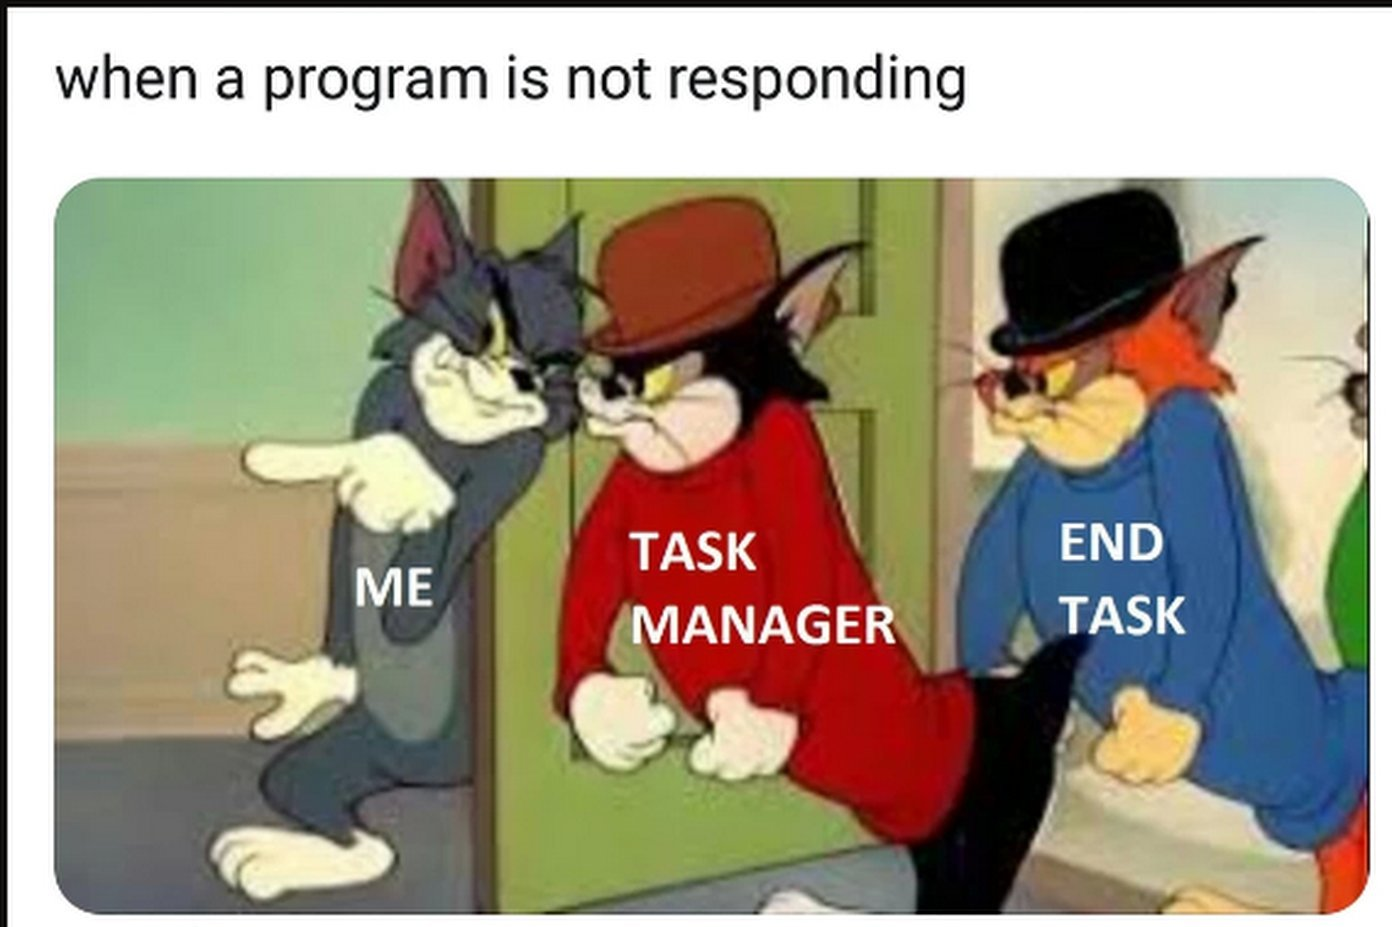 Programs are like Spiderman and must be ended. - meme